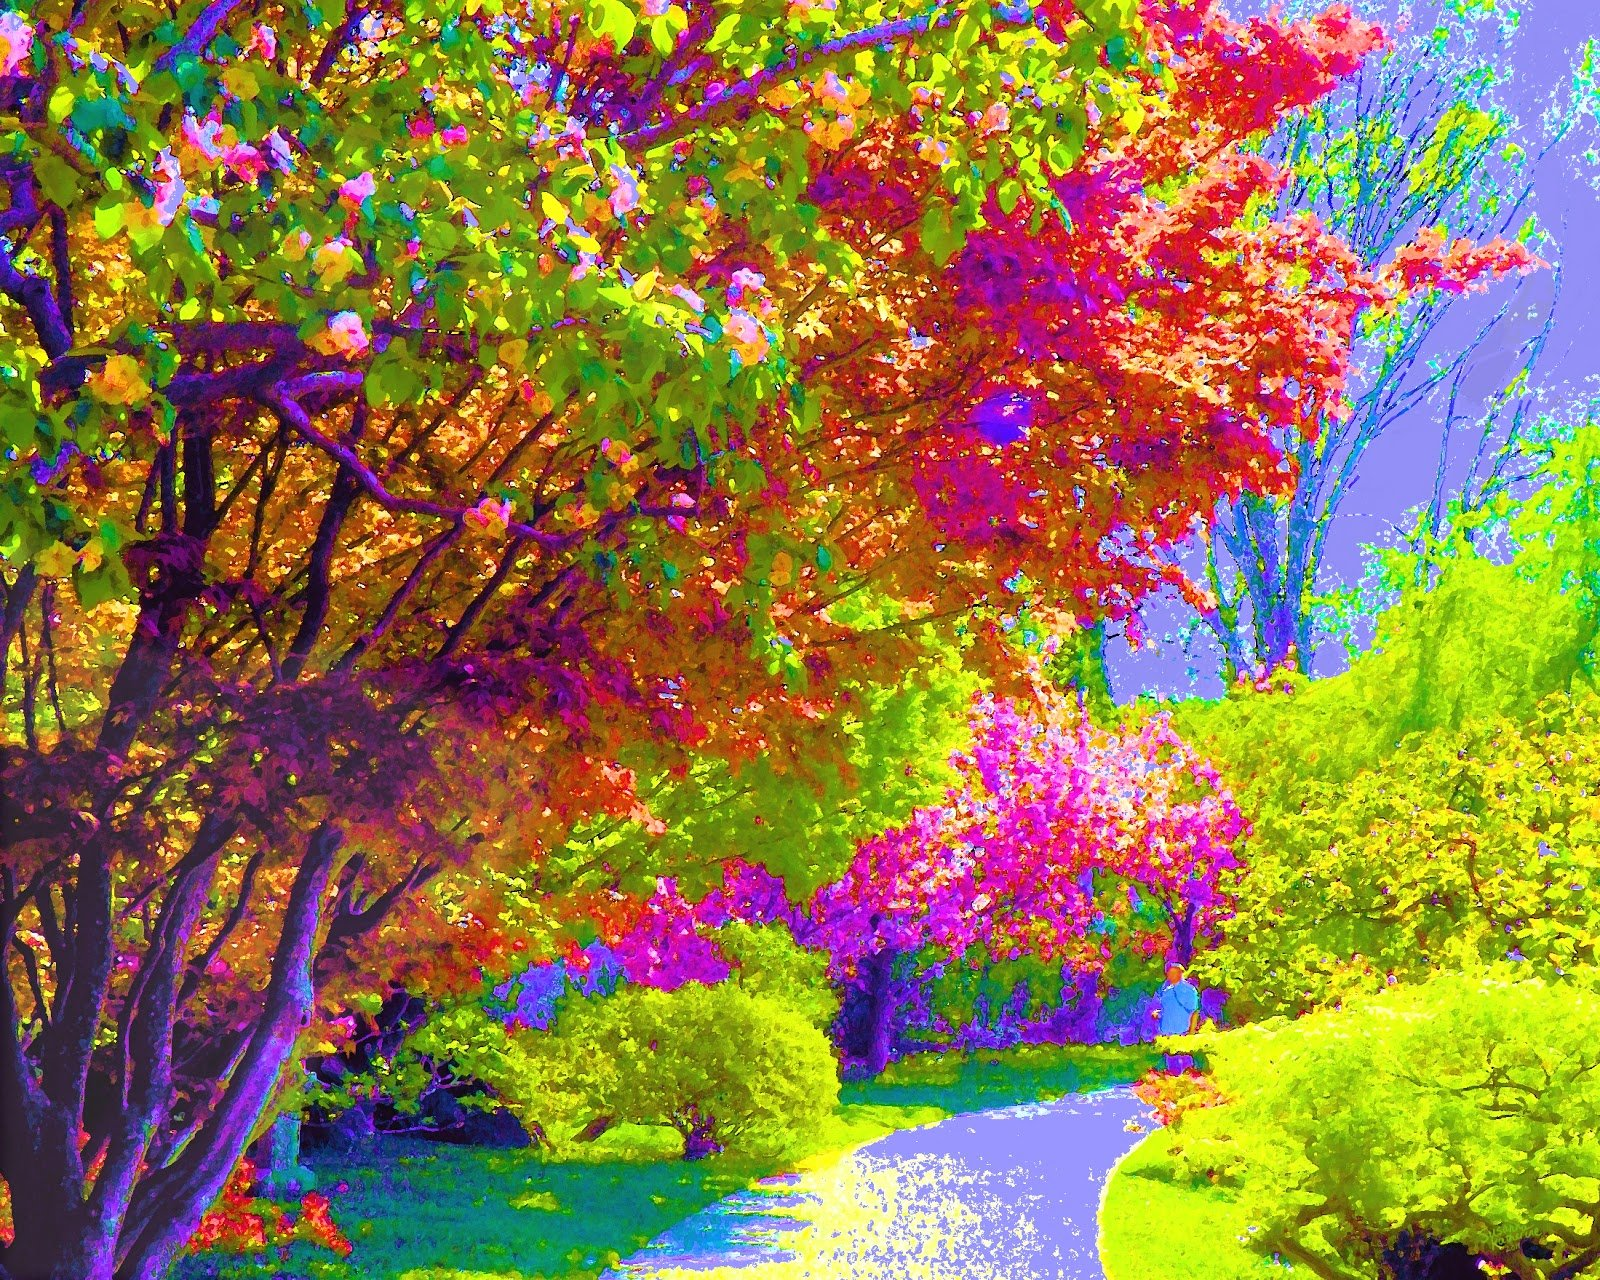 trees painting background here you can see colorful trees painting 1600x1280